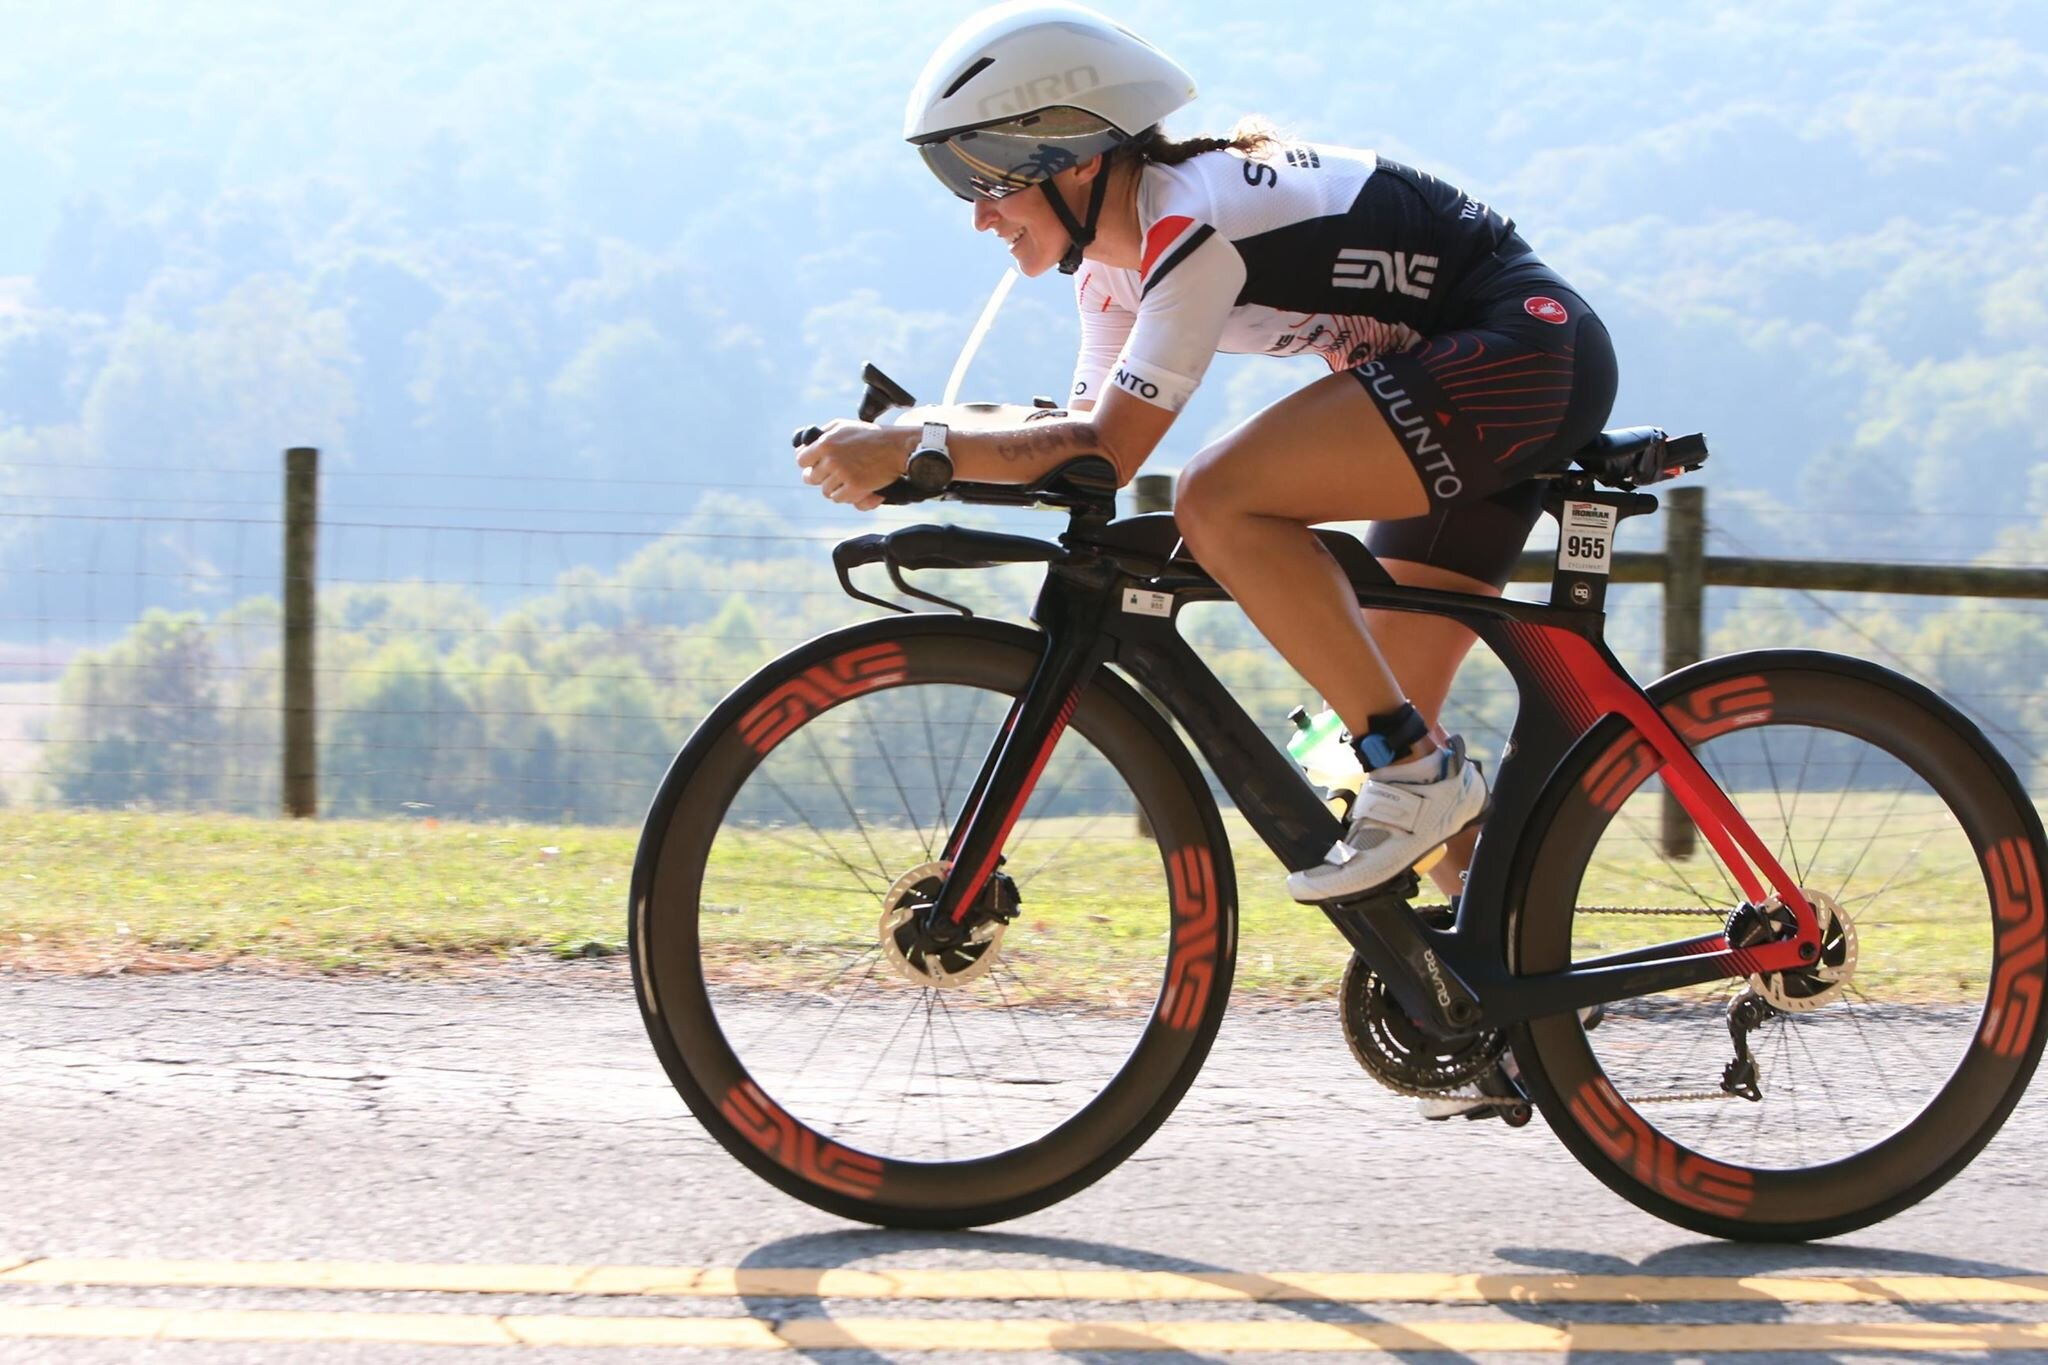 Coach_Terry_Wilson_Pursuit_of_The_Perfect_Race_IRONMAN_Chattanooga_Emily_Rollins_10.jpg